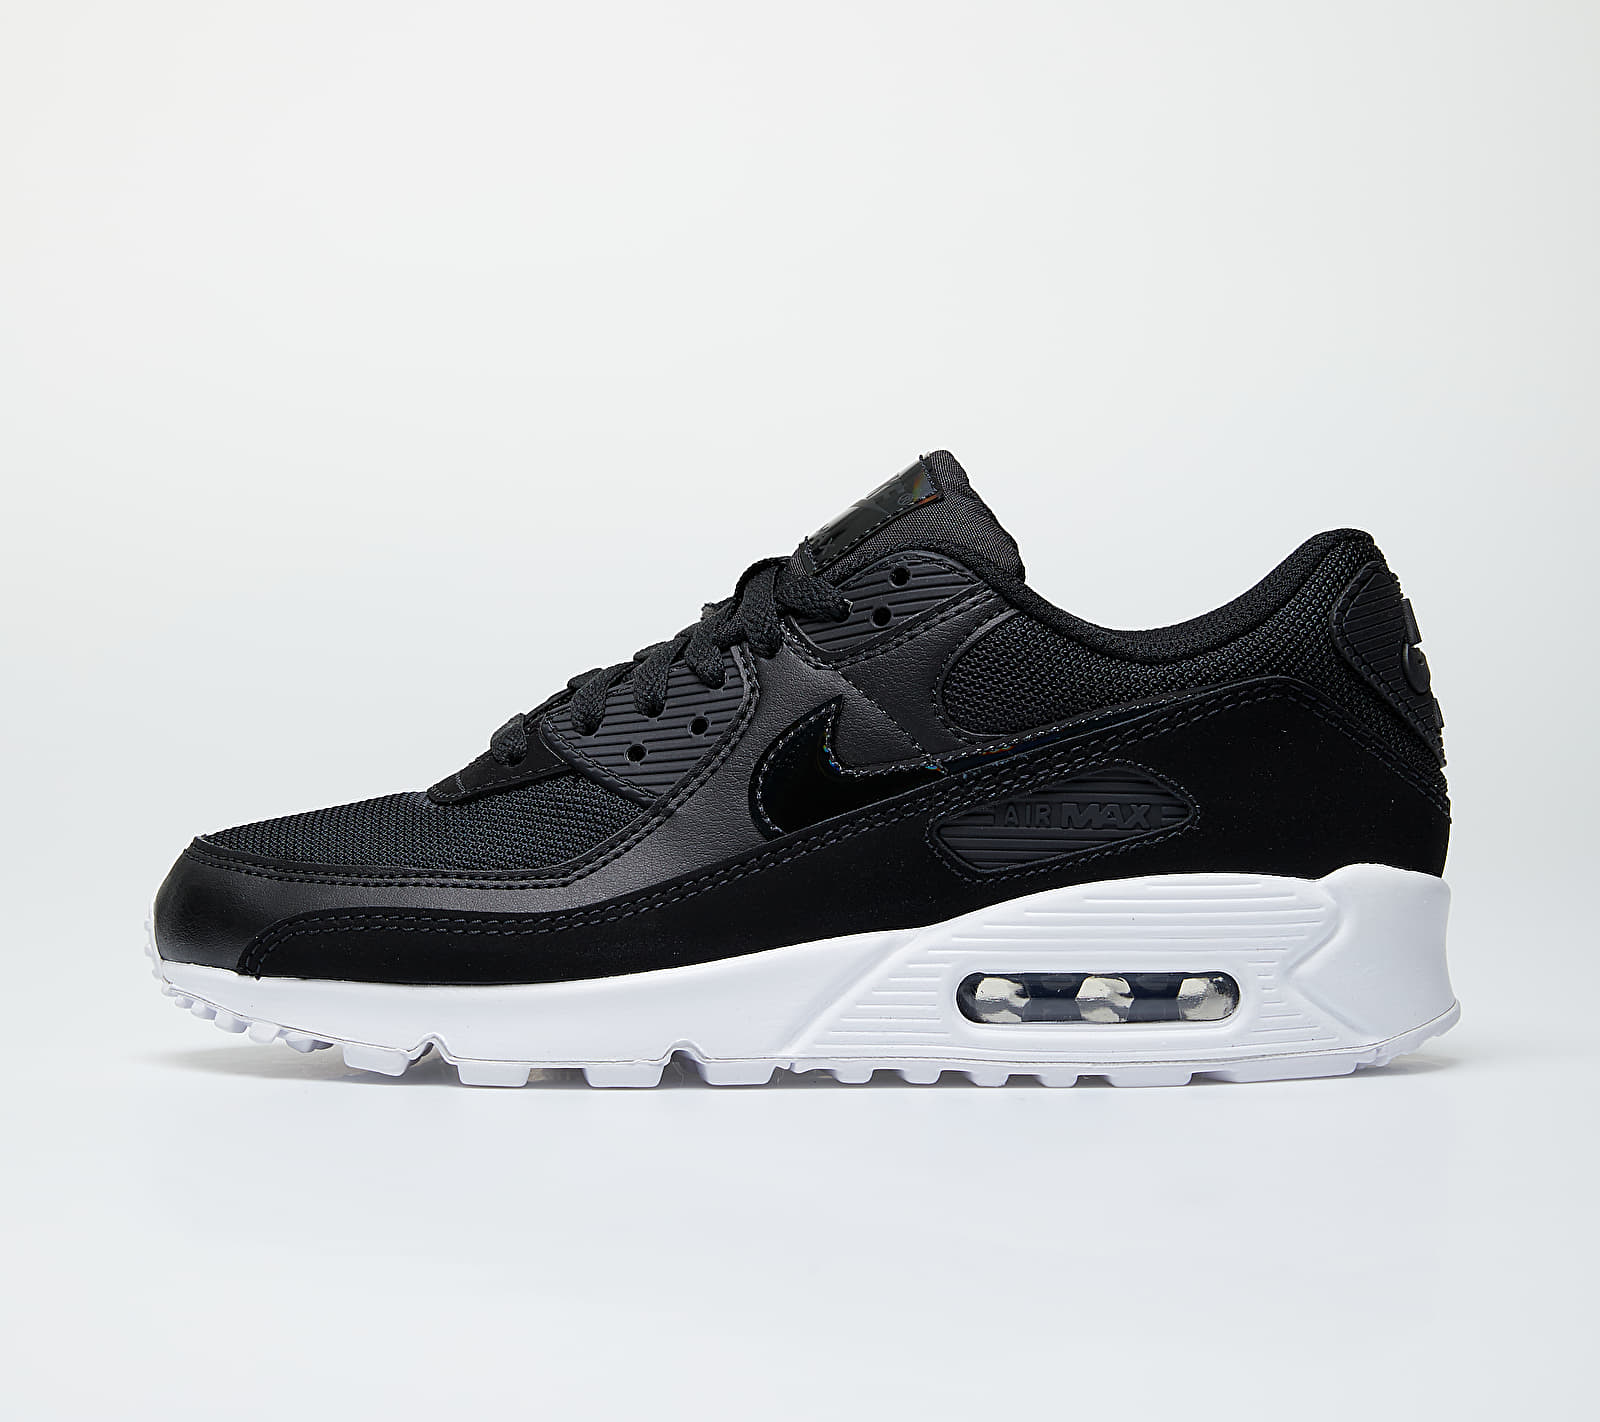 Nike W Air Max 90 Twist Black/ Black-White EUR 41